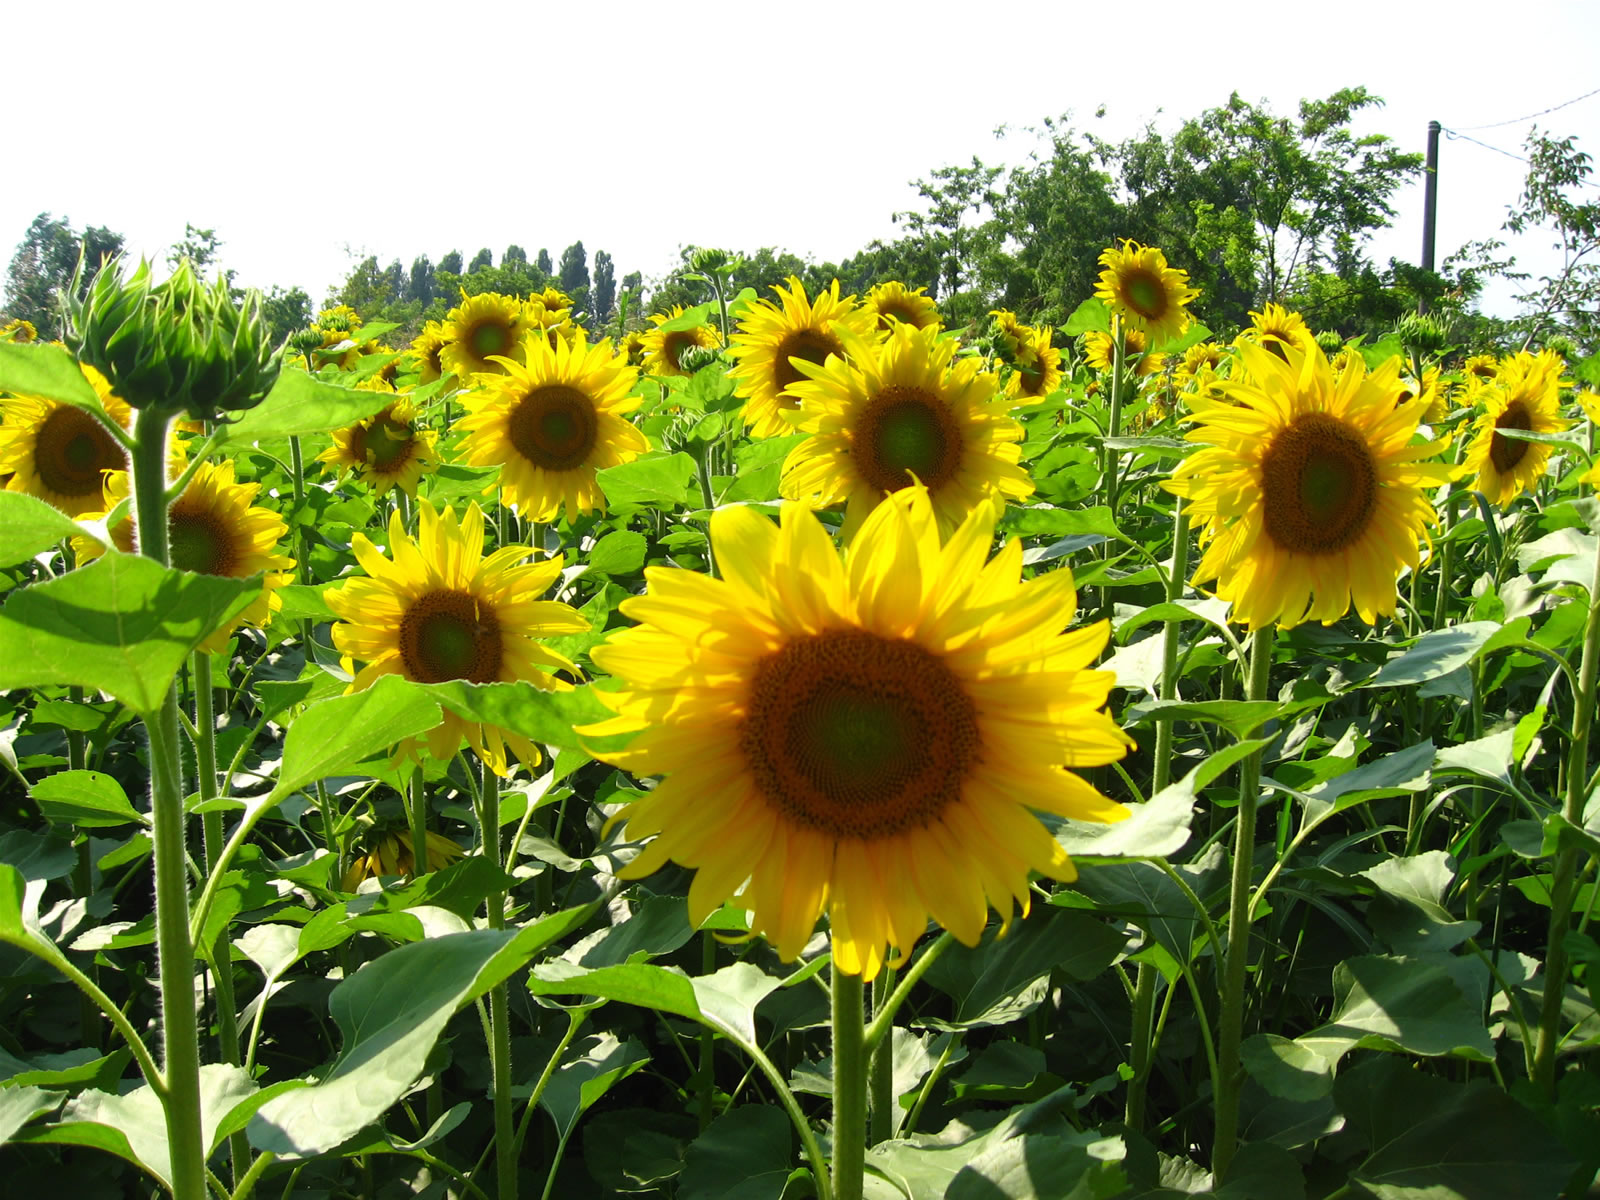 Sunflower Wallpaper Photo : download Full High resolution